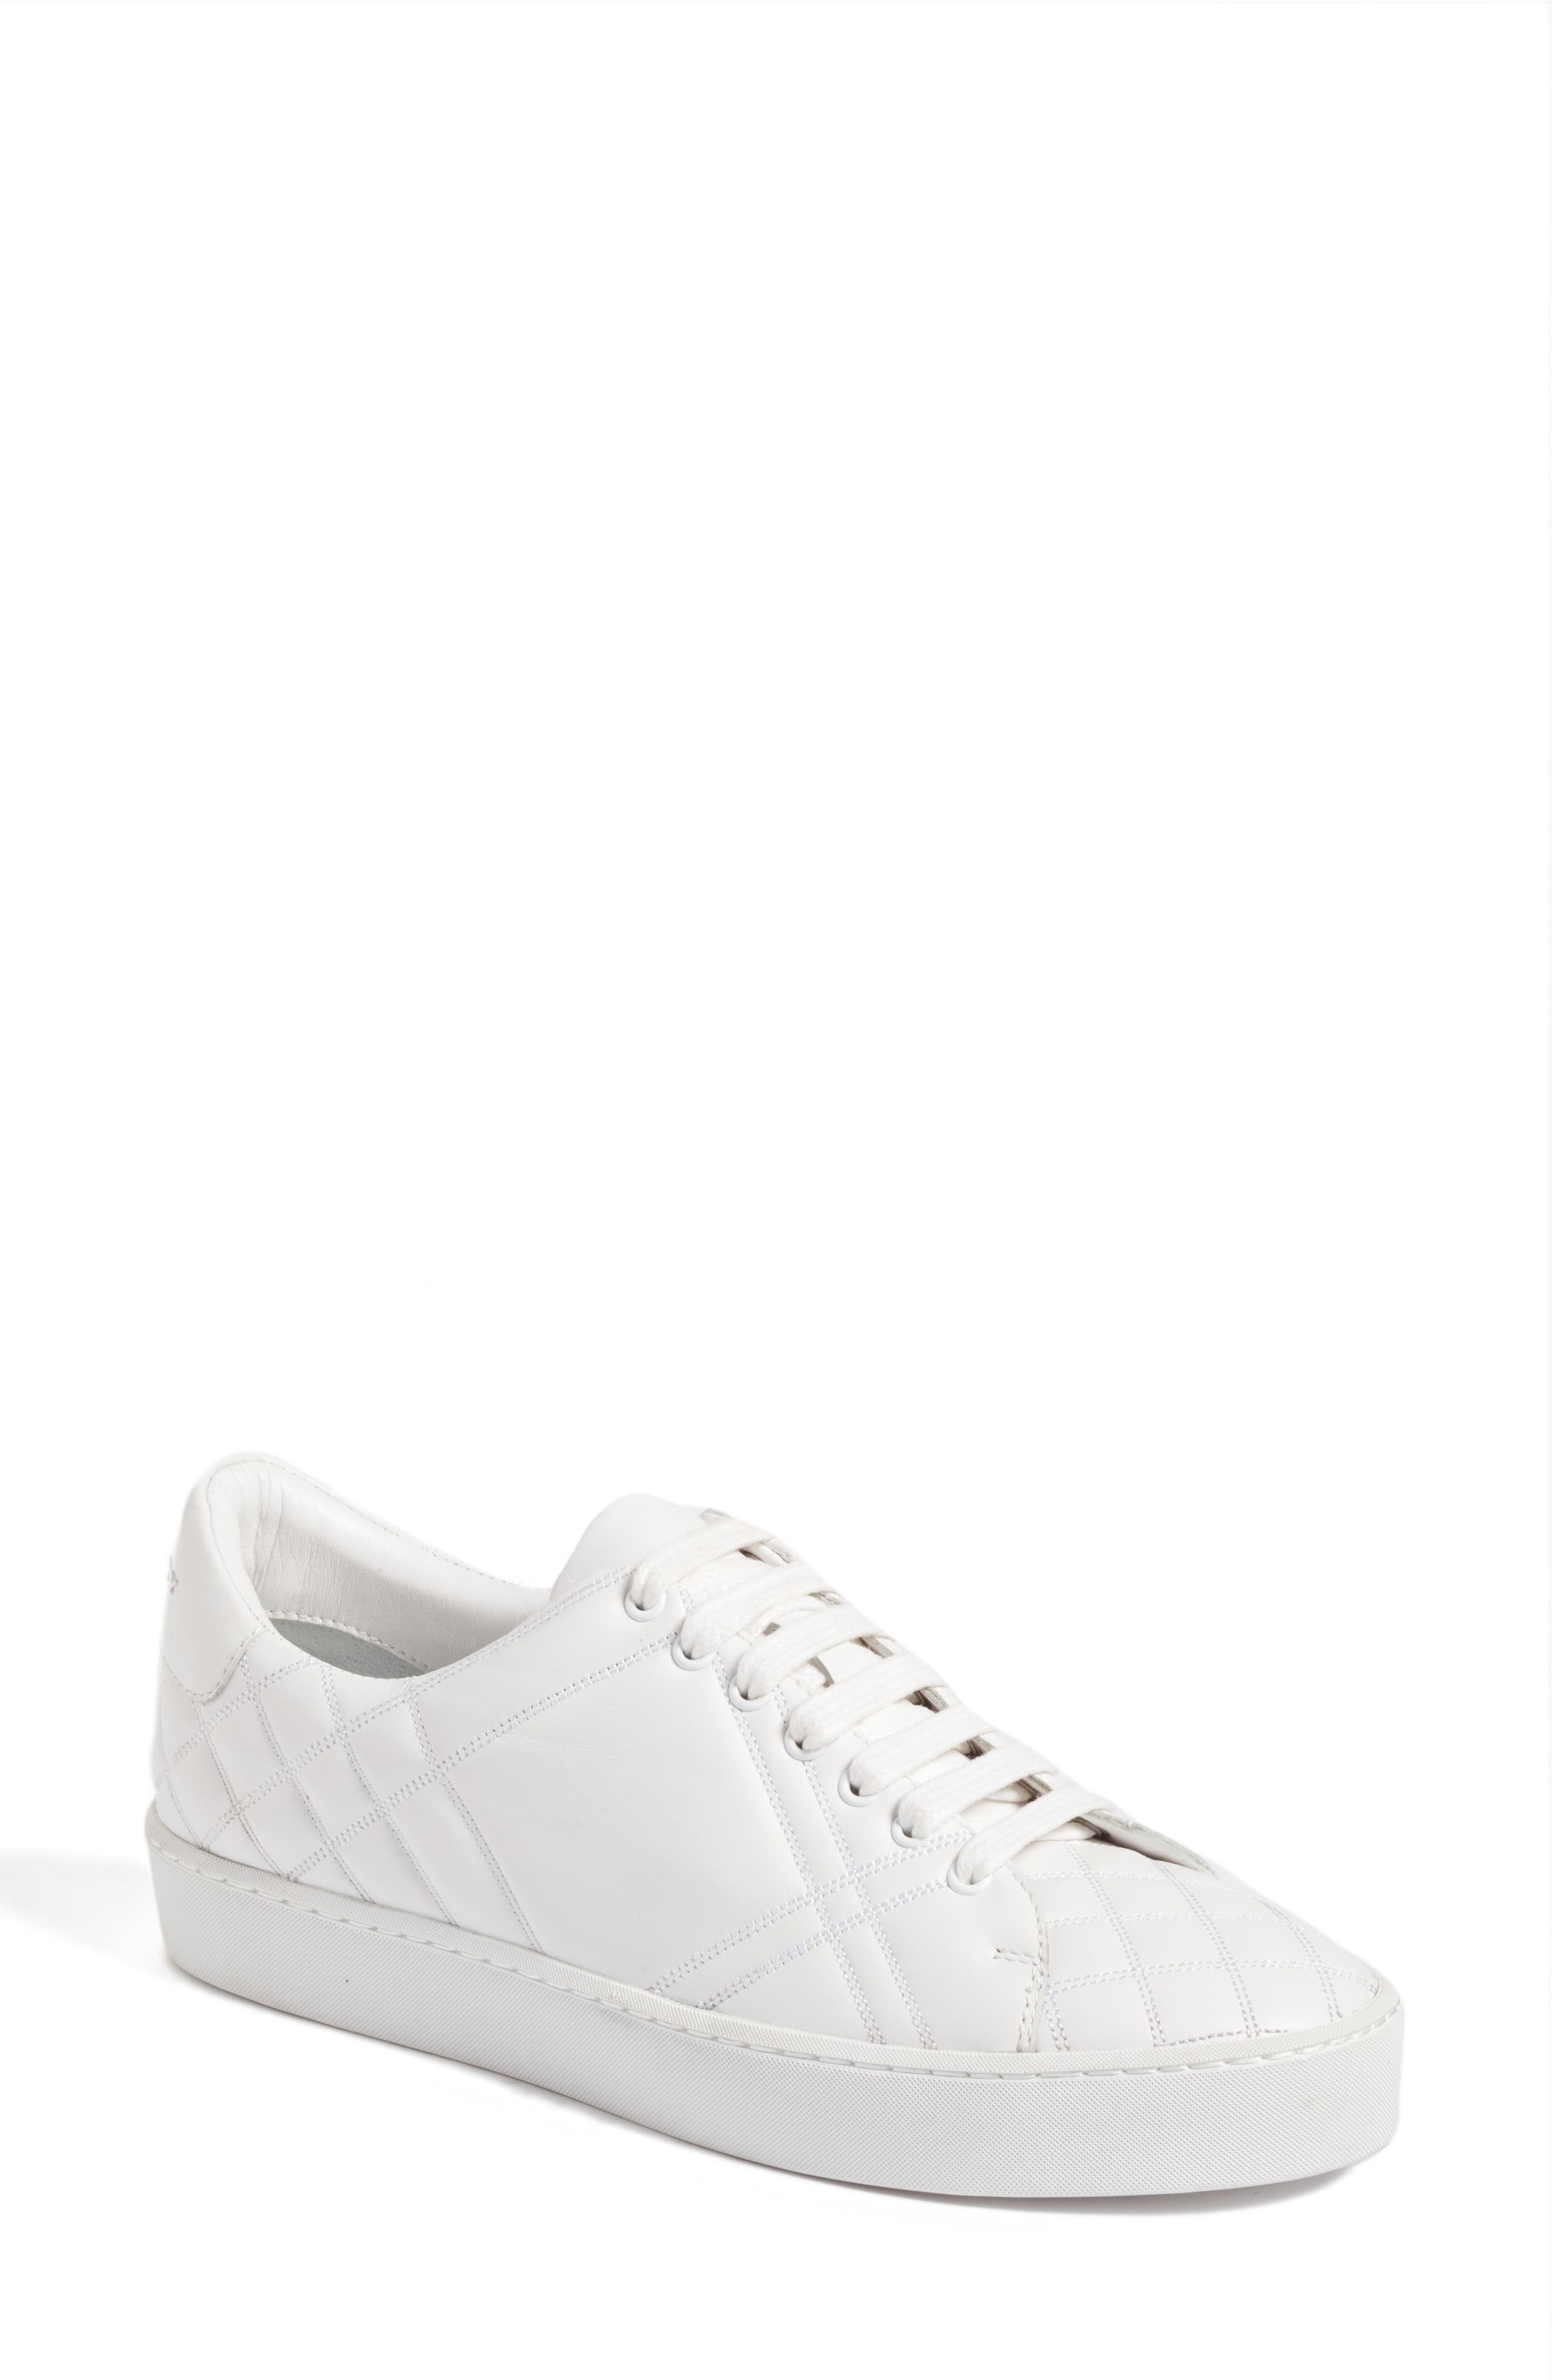 Burberry Check Quilted Leather Sneaker (Women)